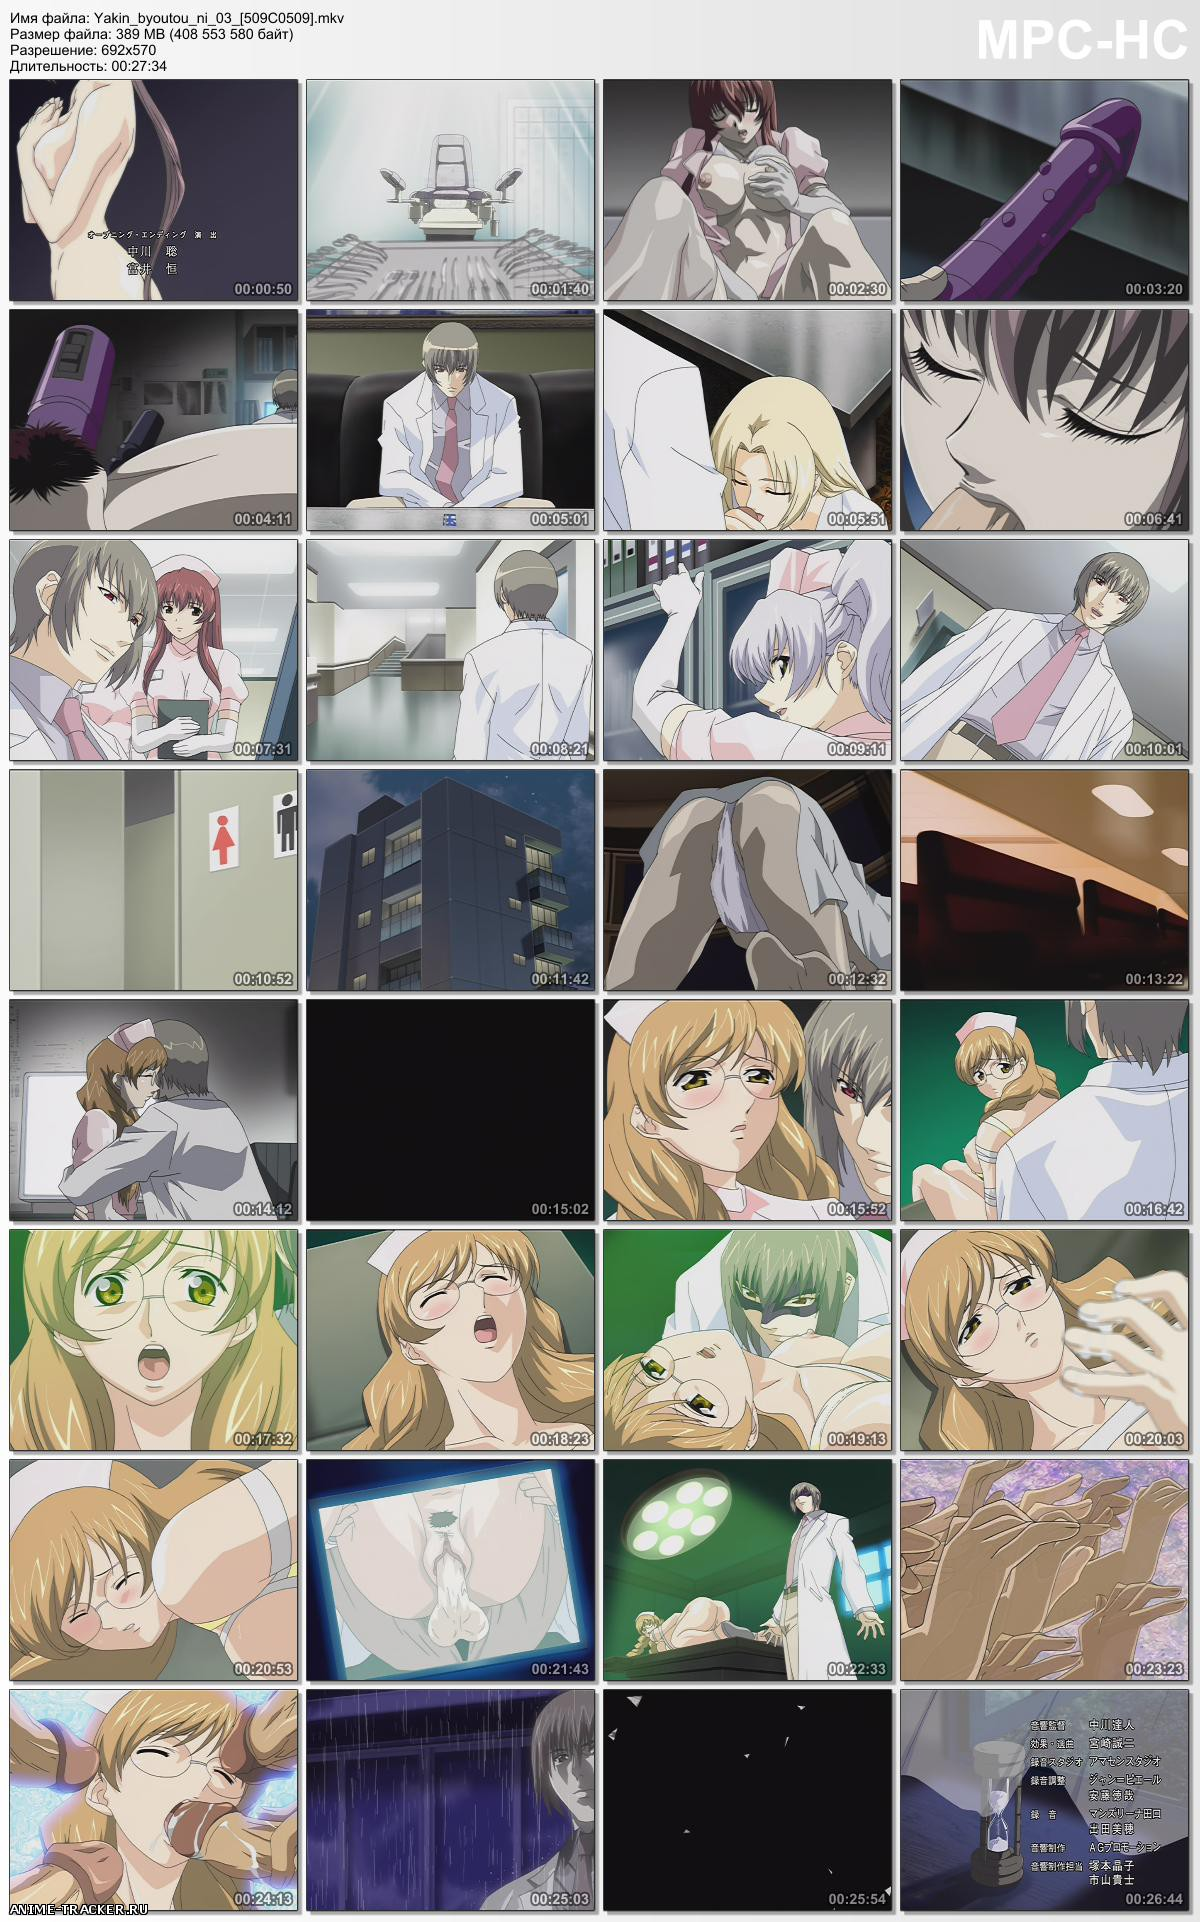 Night Shift Nurses / Yakin Byoutou / Медсестры ночной смены [complete collection] [JPN,ENG,RUS,Multi] Anime Hentai